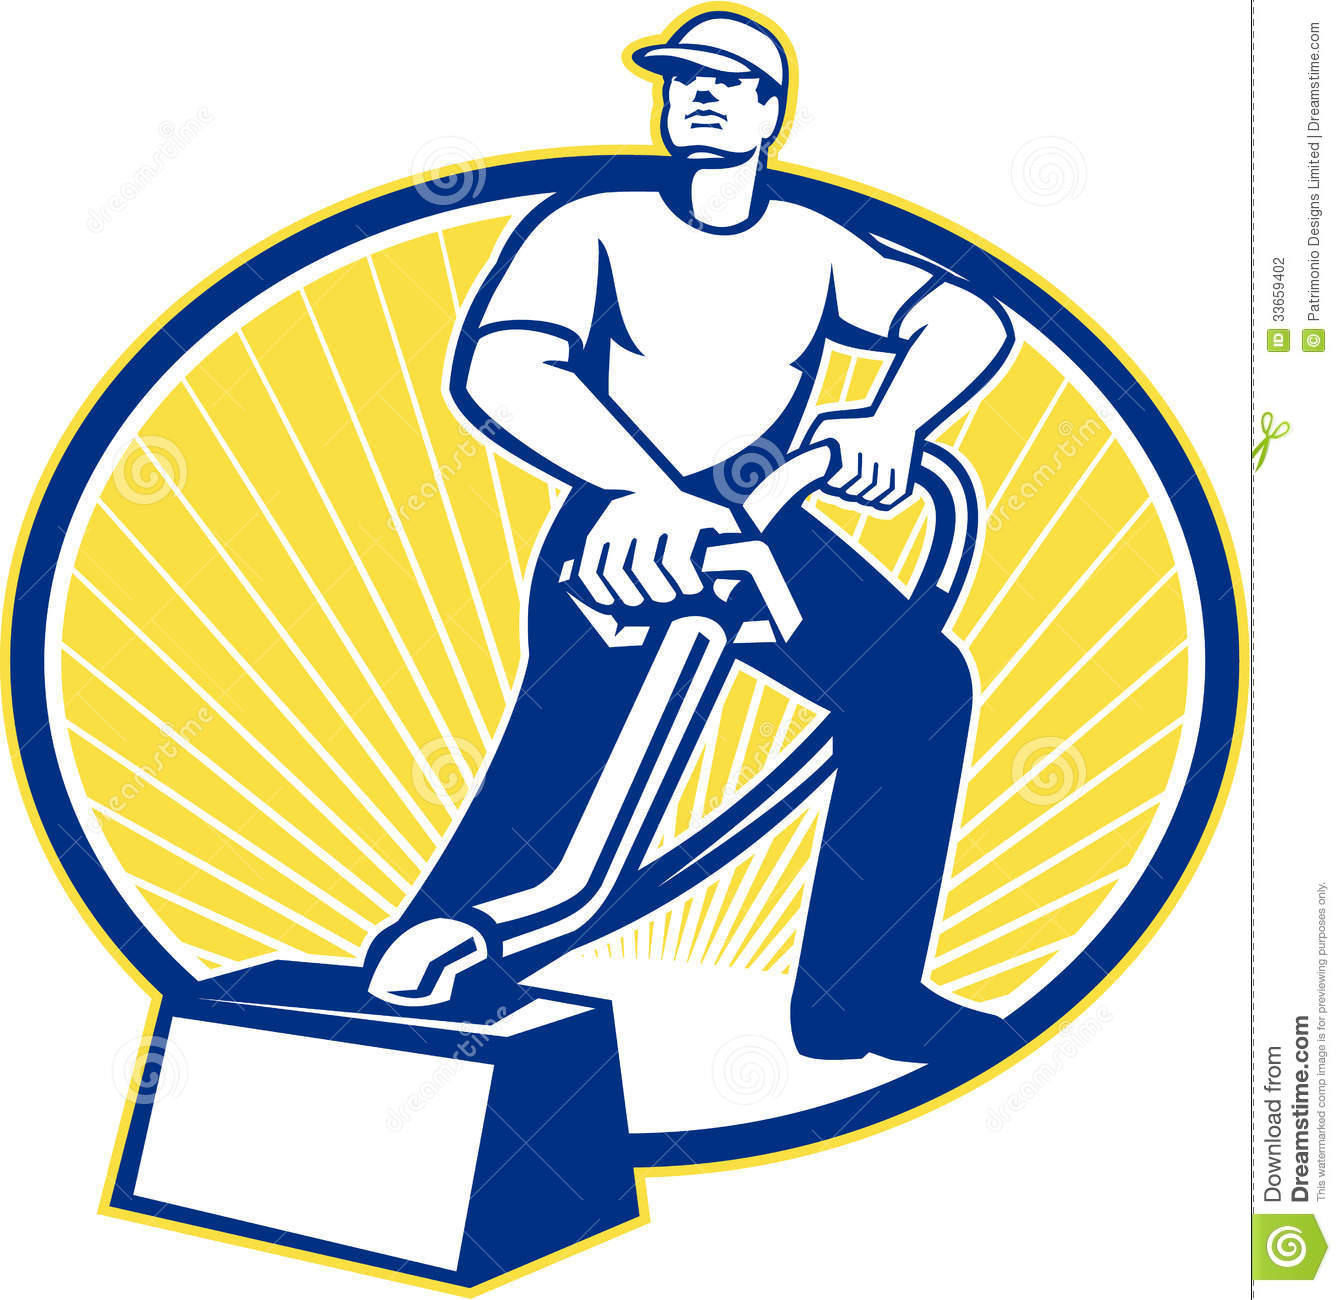 Illustration Of A Carpet Cleaner Worker Vacuuming With Vacuum Cleaner